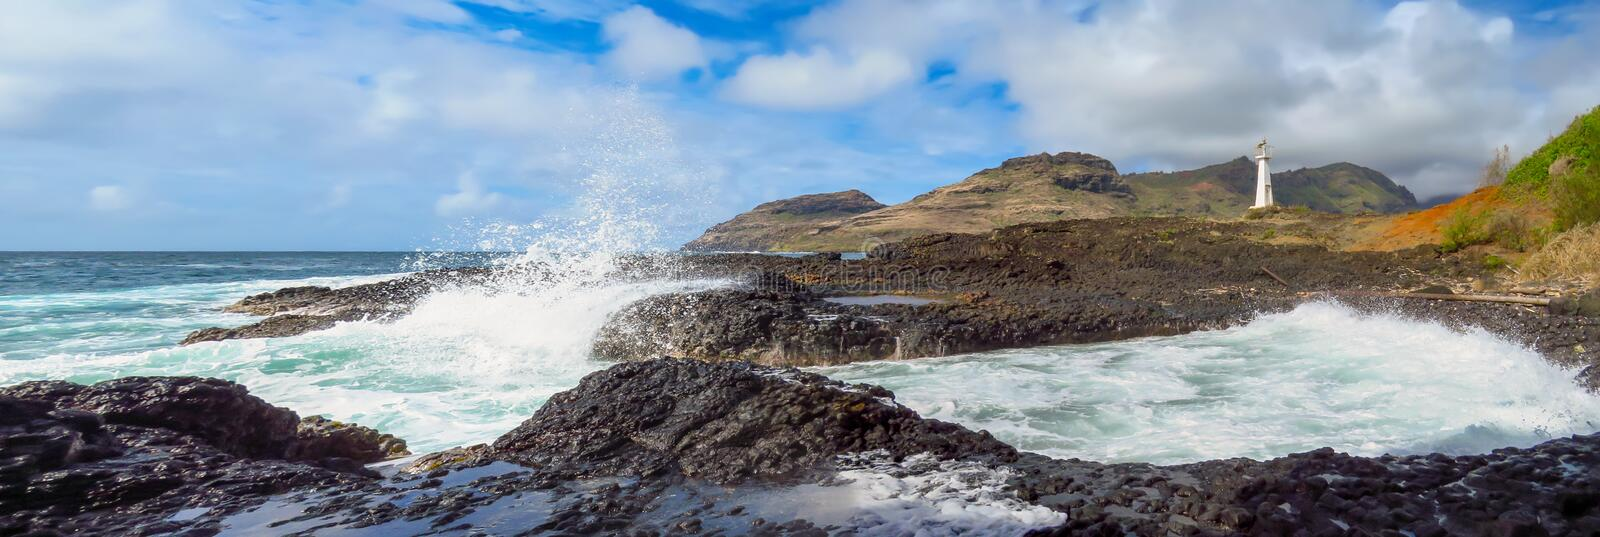 Panoramic view of waves splashing on the rocky shore at Kukii Point lighthouse, Kalapaki, Kauai, Hawaii, USA royalty free stock photos